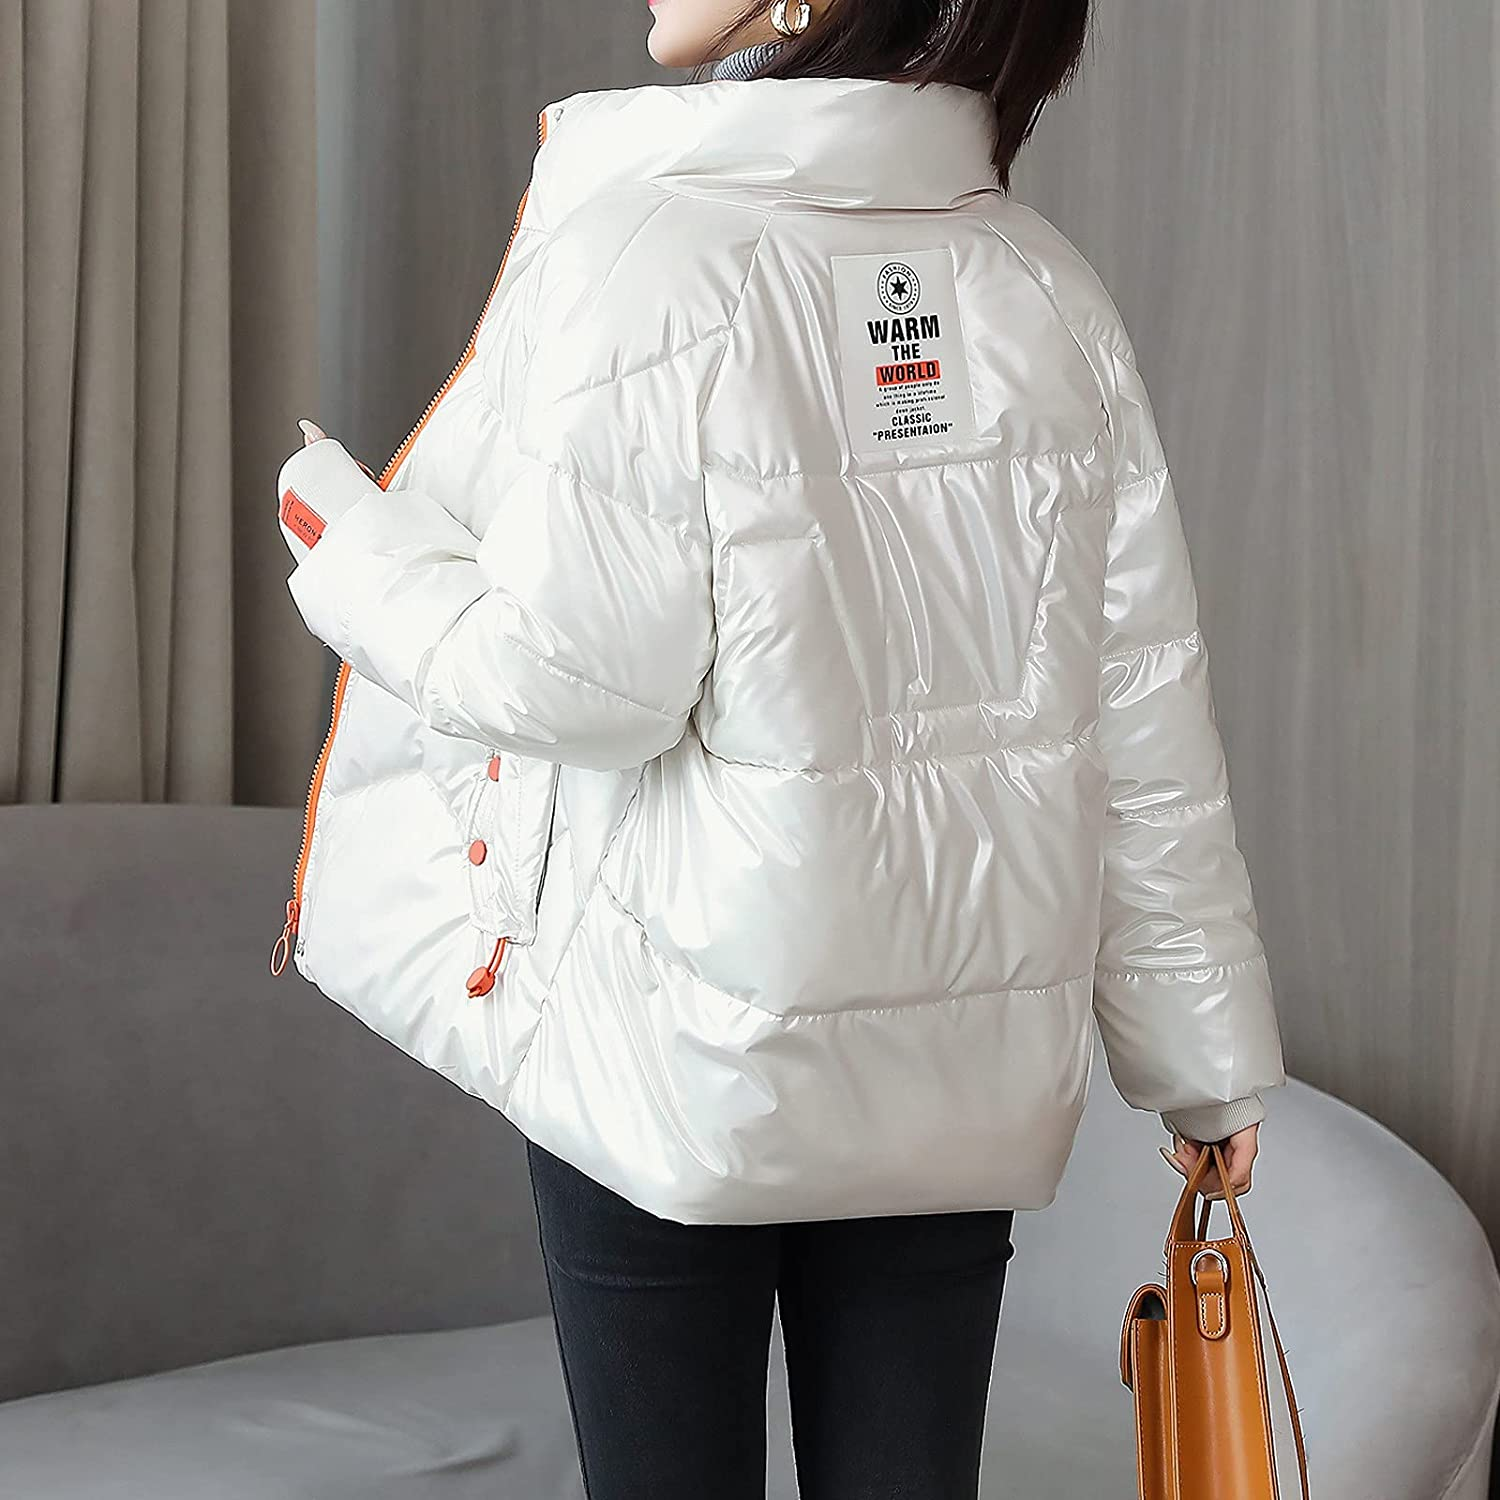 Rovga Womens Down Jacket Winter Fashion Outerwear Long Cotton-Padded Jackets Suede Hooded Coats with Pockets